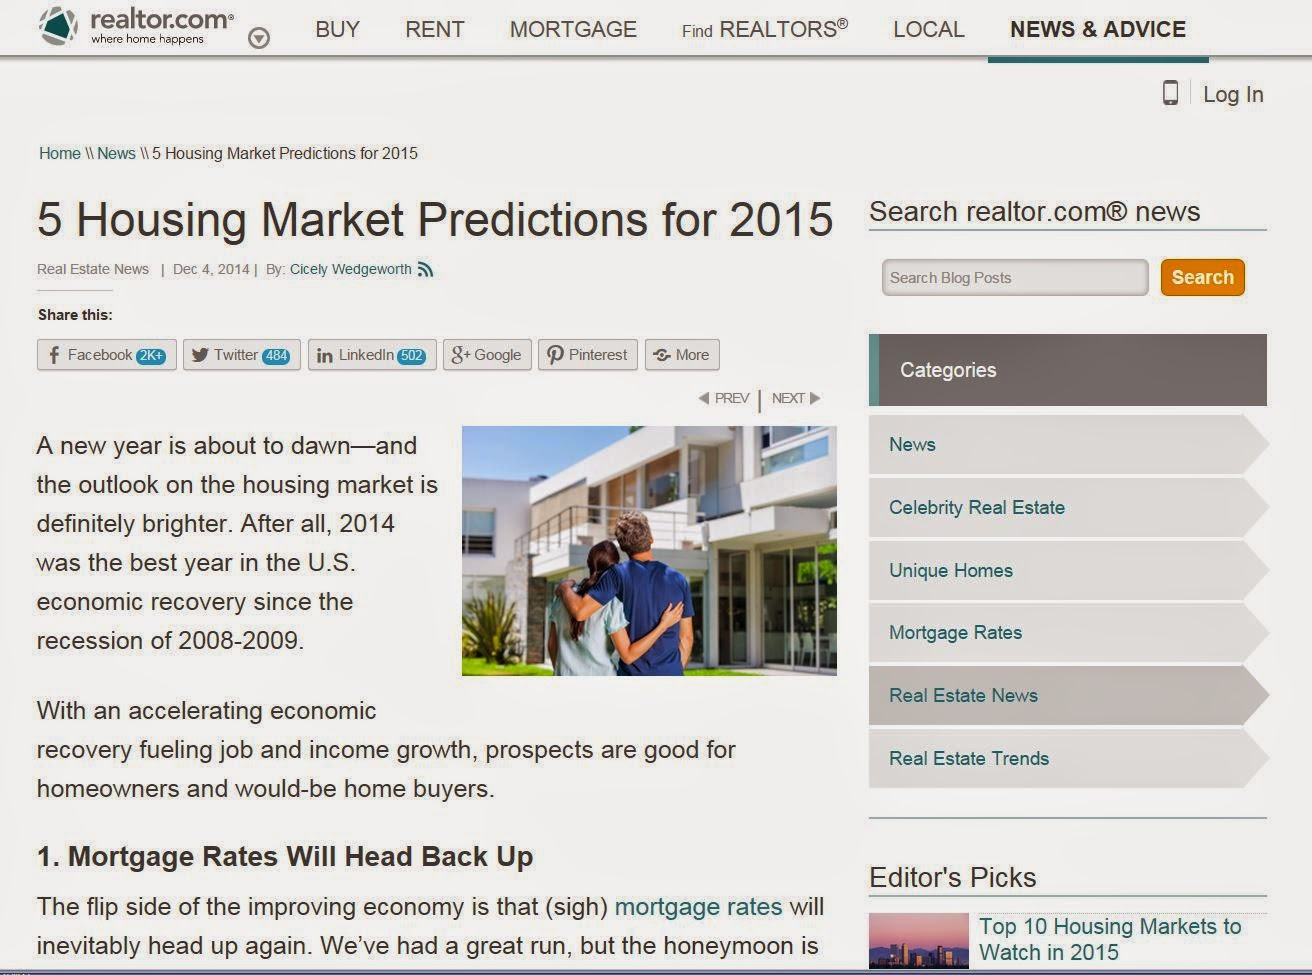 http://www.realtor.com/news/5-housing-market-predictions-2015/